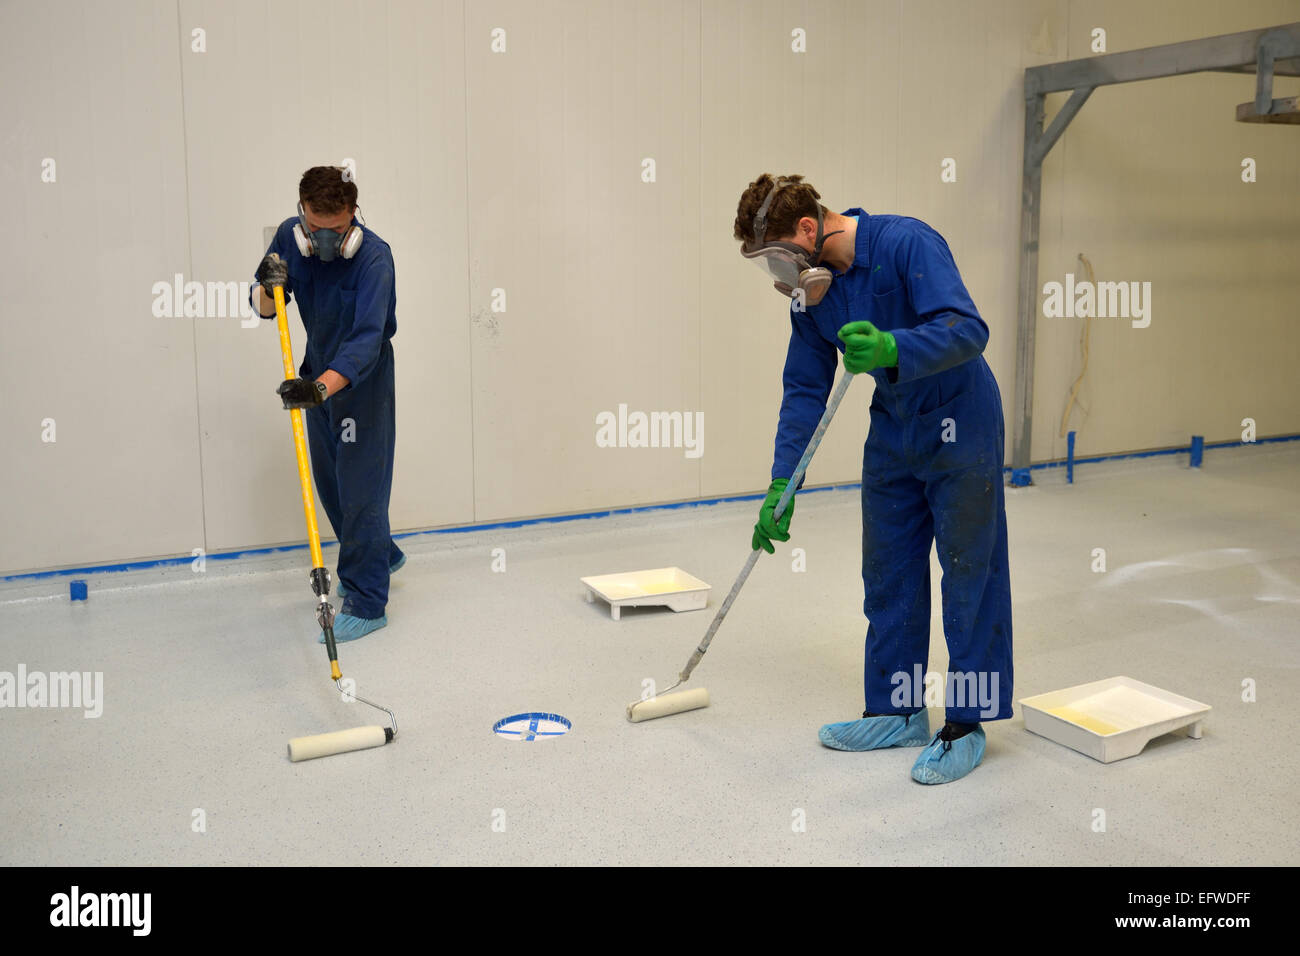 tradesmen roll a final coat of clear epoxy product on the floor of an industrial building - Stock Image